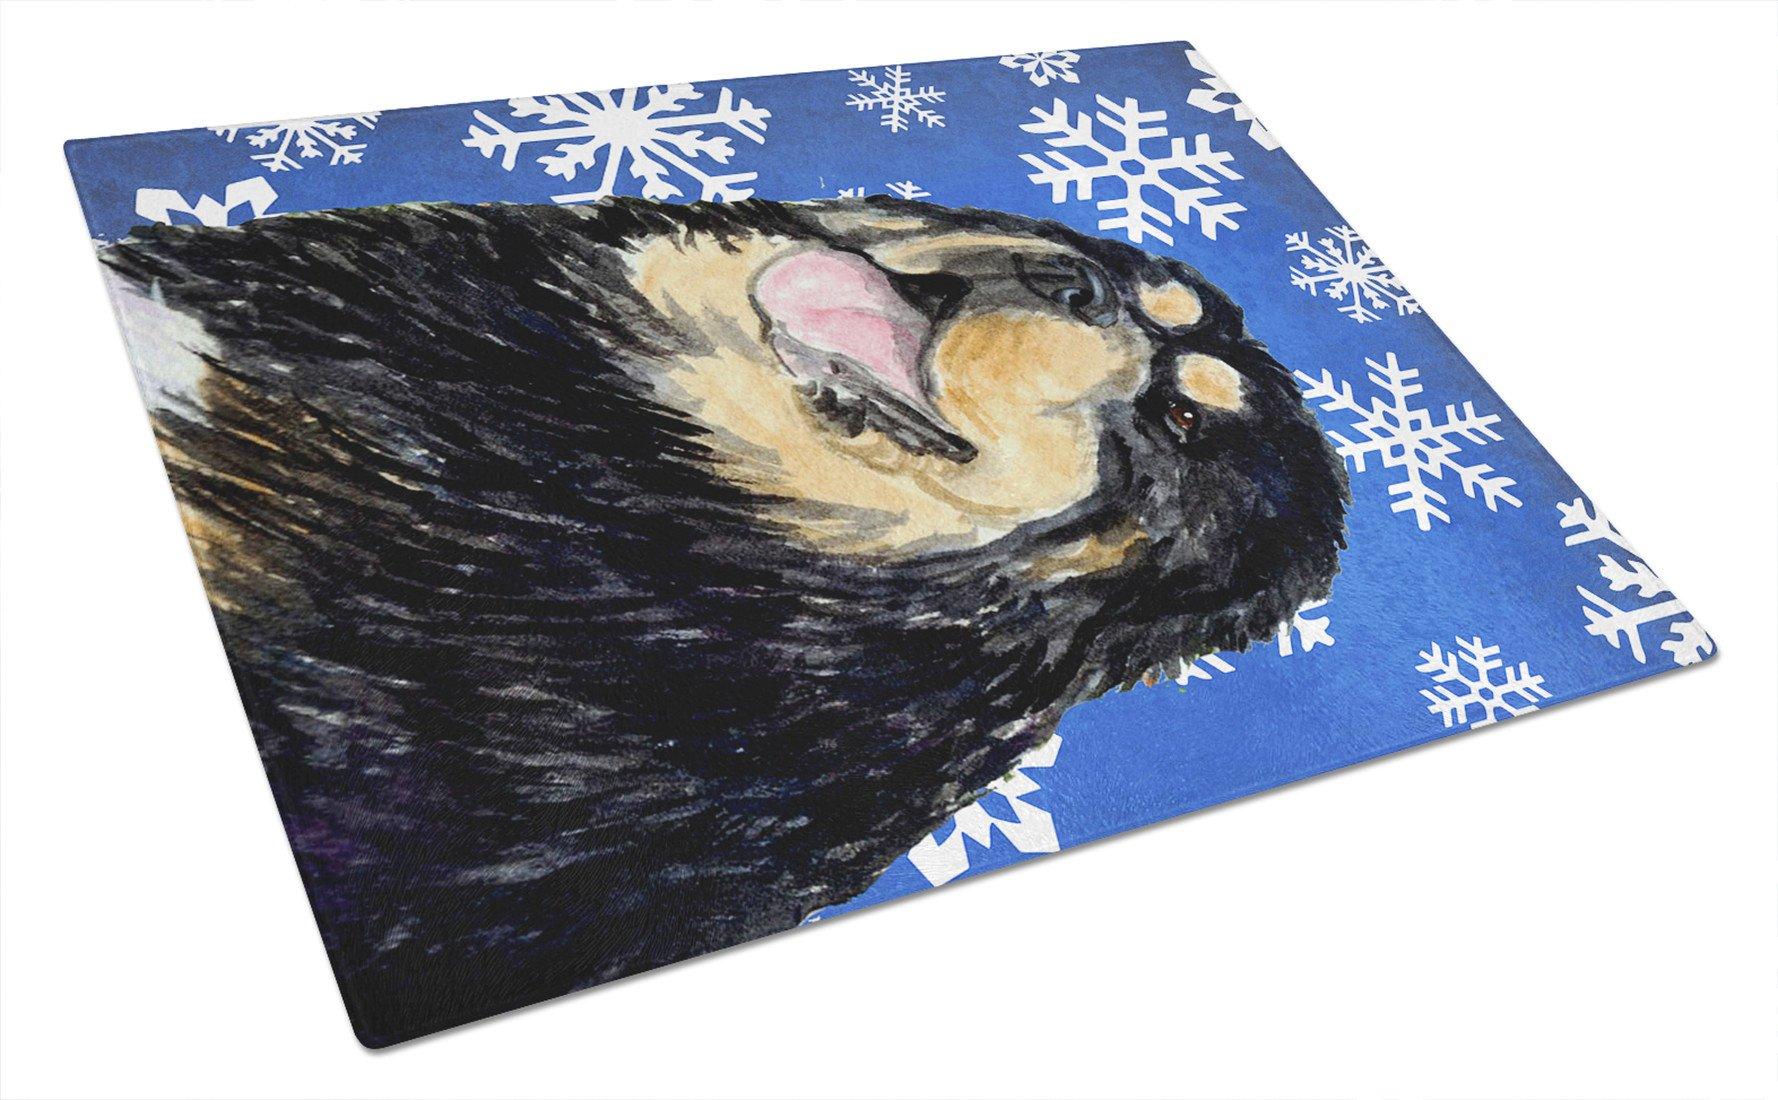 Tibetan Mastiff Winter Snowflakes Holiday Glass Cutting Board Large by Caroline's Treasures